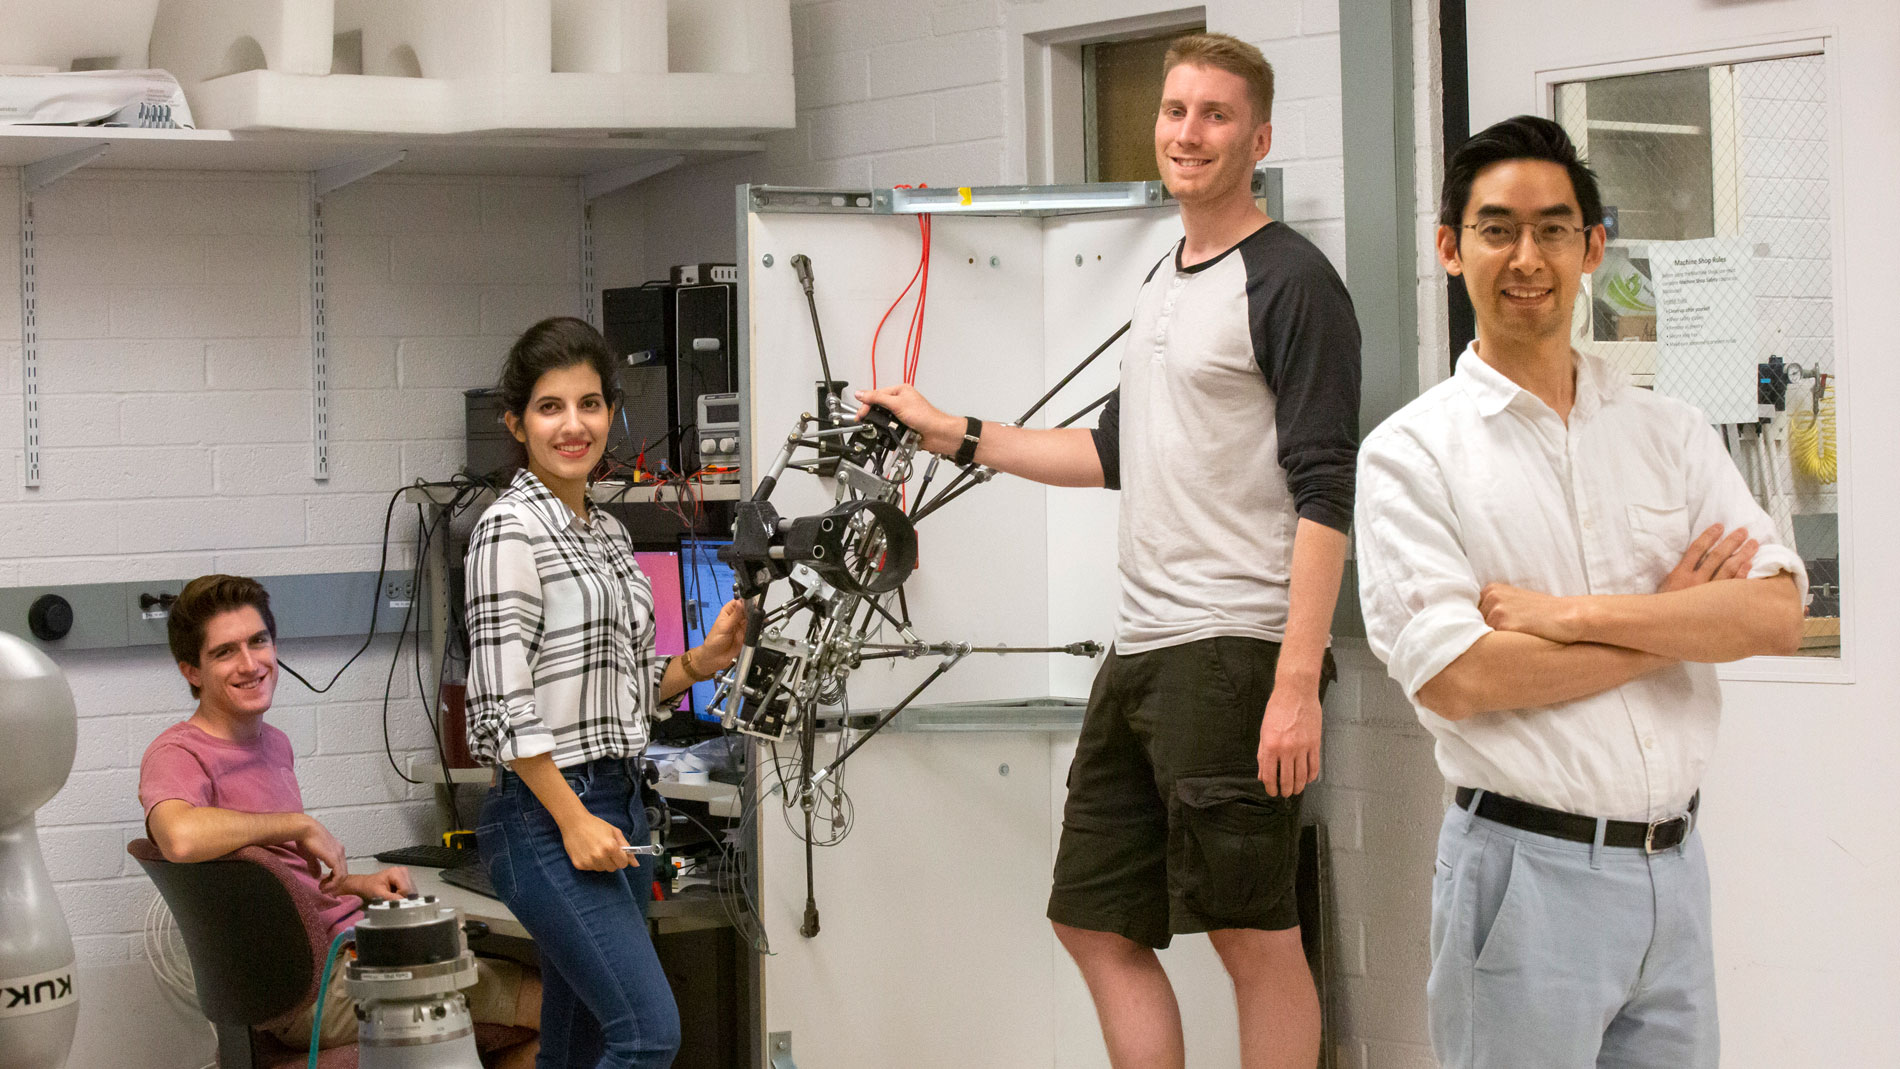 Assistant Professor Hyunglae Lee (right) and his students in the Neuromuscular Control and Human Robotics Laboratory.